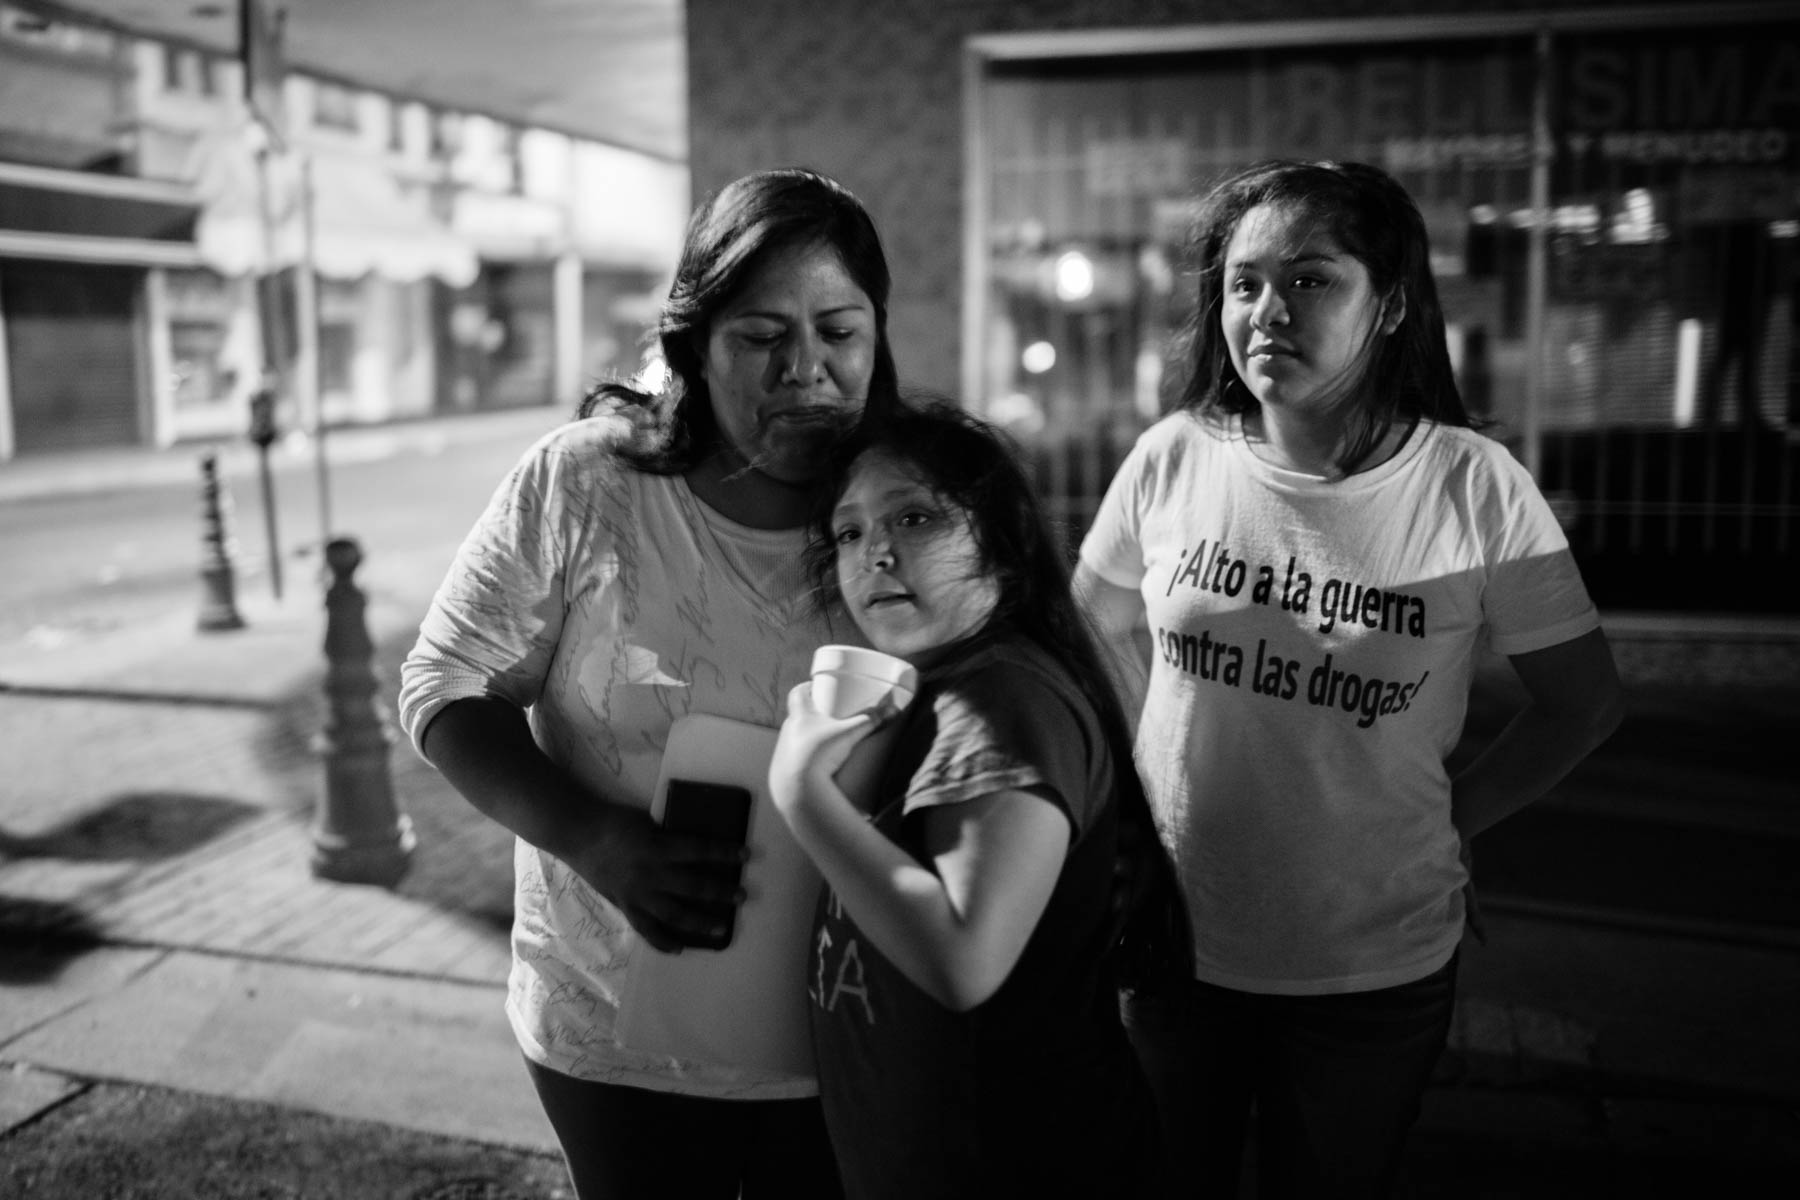 14 April 2016 - Loredo, Texas - Myrna Lazcano, Michel Animas Lazcano, Heidy Animas Lazcano (f.l.t.r.) after their reunifcation in Loredo. The children have been seperated from their mother after she was deported to Mexico three years ago in 2013. In 2012 200'000 parents have been separted from their US-citizen children through deportation like in the case of the family Lazcano.  Photo credit: Cédric Dürig